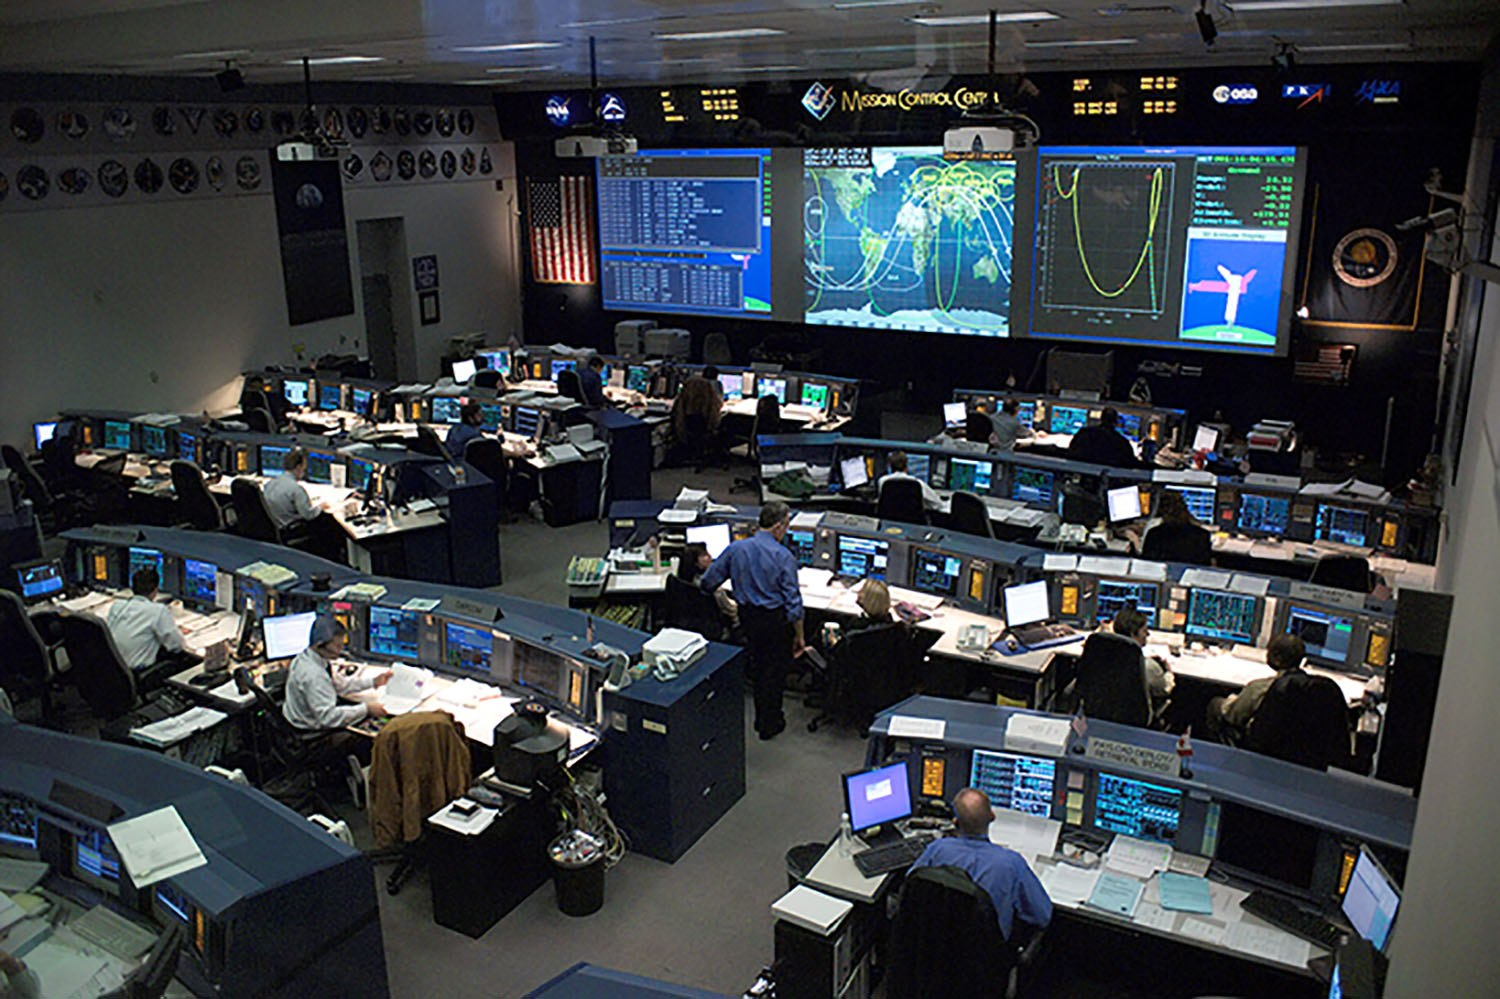 Mission Control Back In The Day